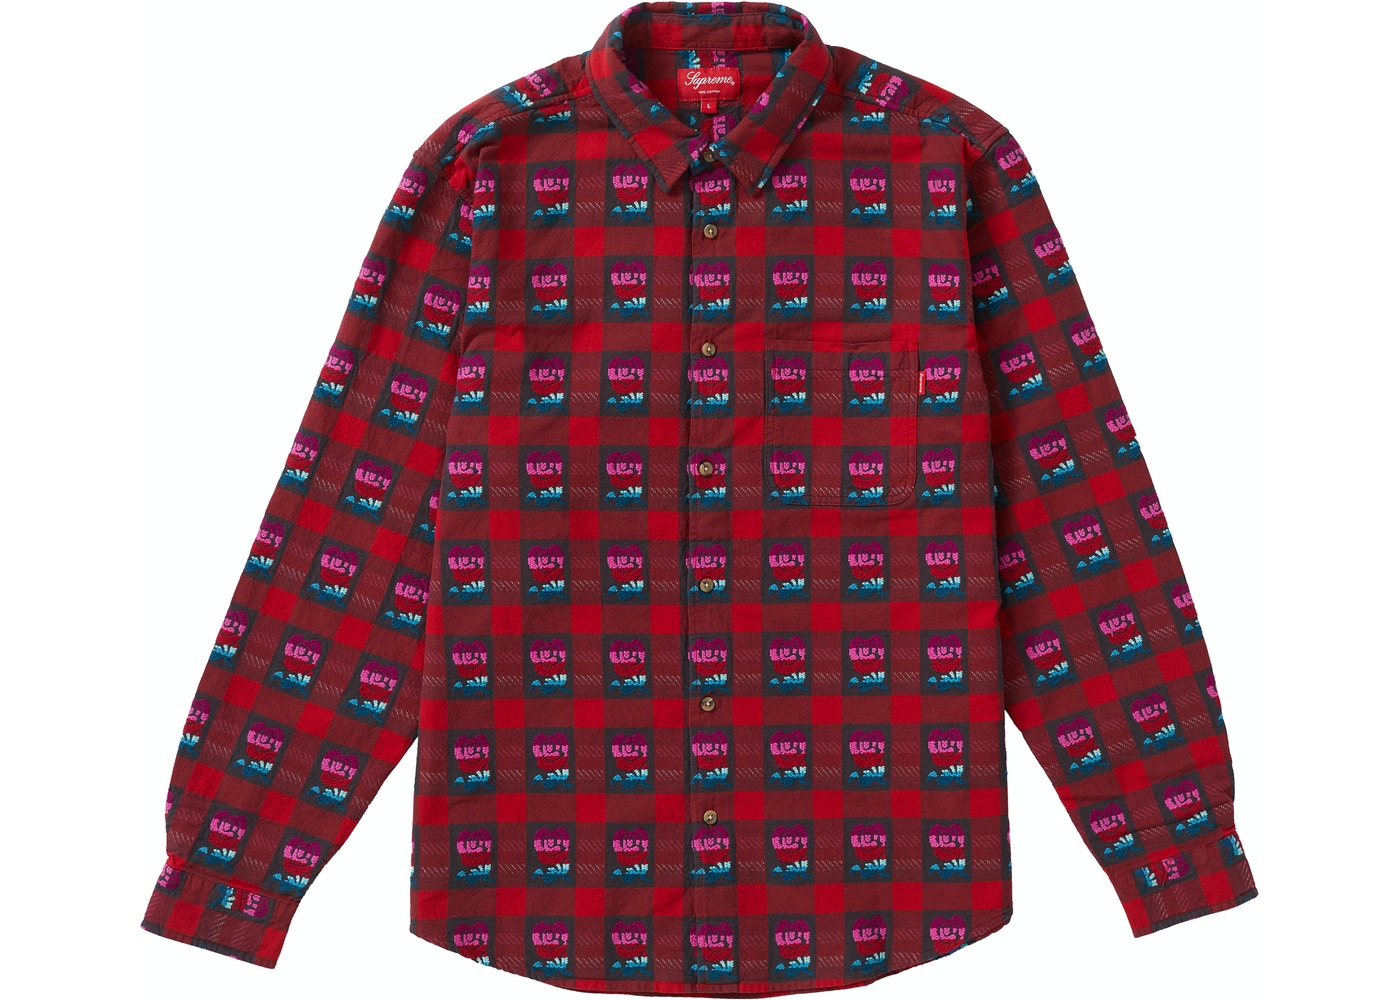 a45a3849ac97 Supreme Shirts - Buy & Sell Streetwear